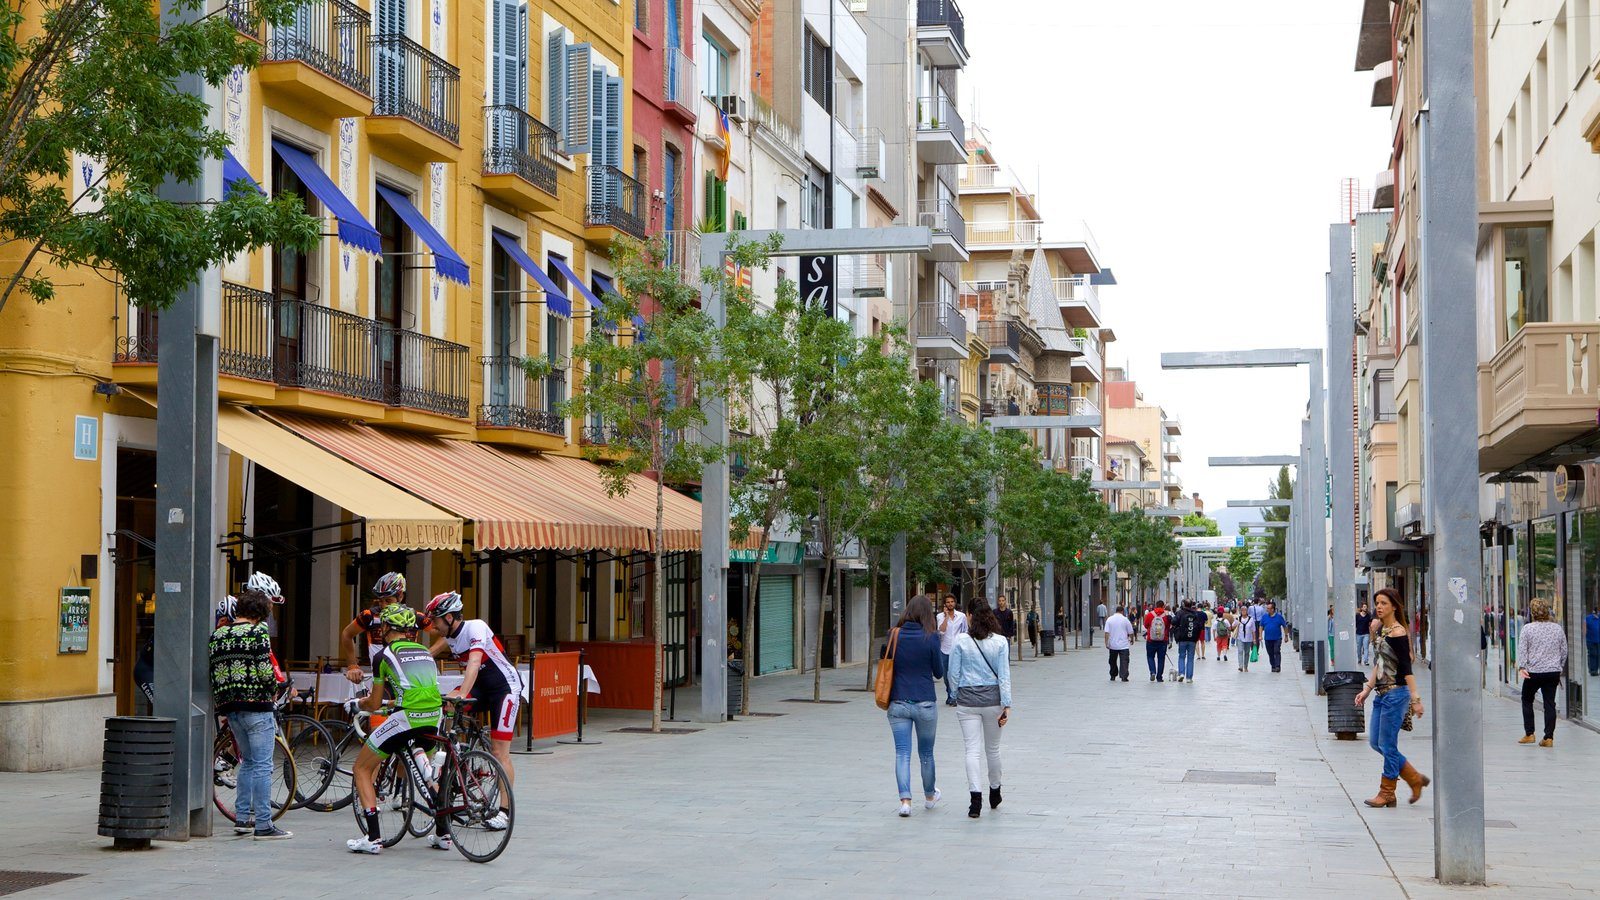 Granollers showing street scenes as well as a large group of people